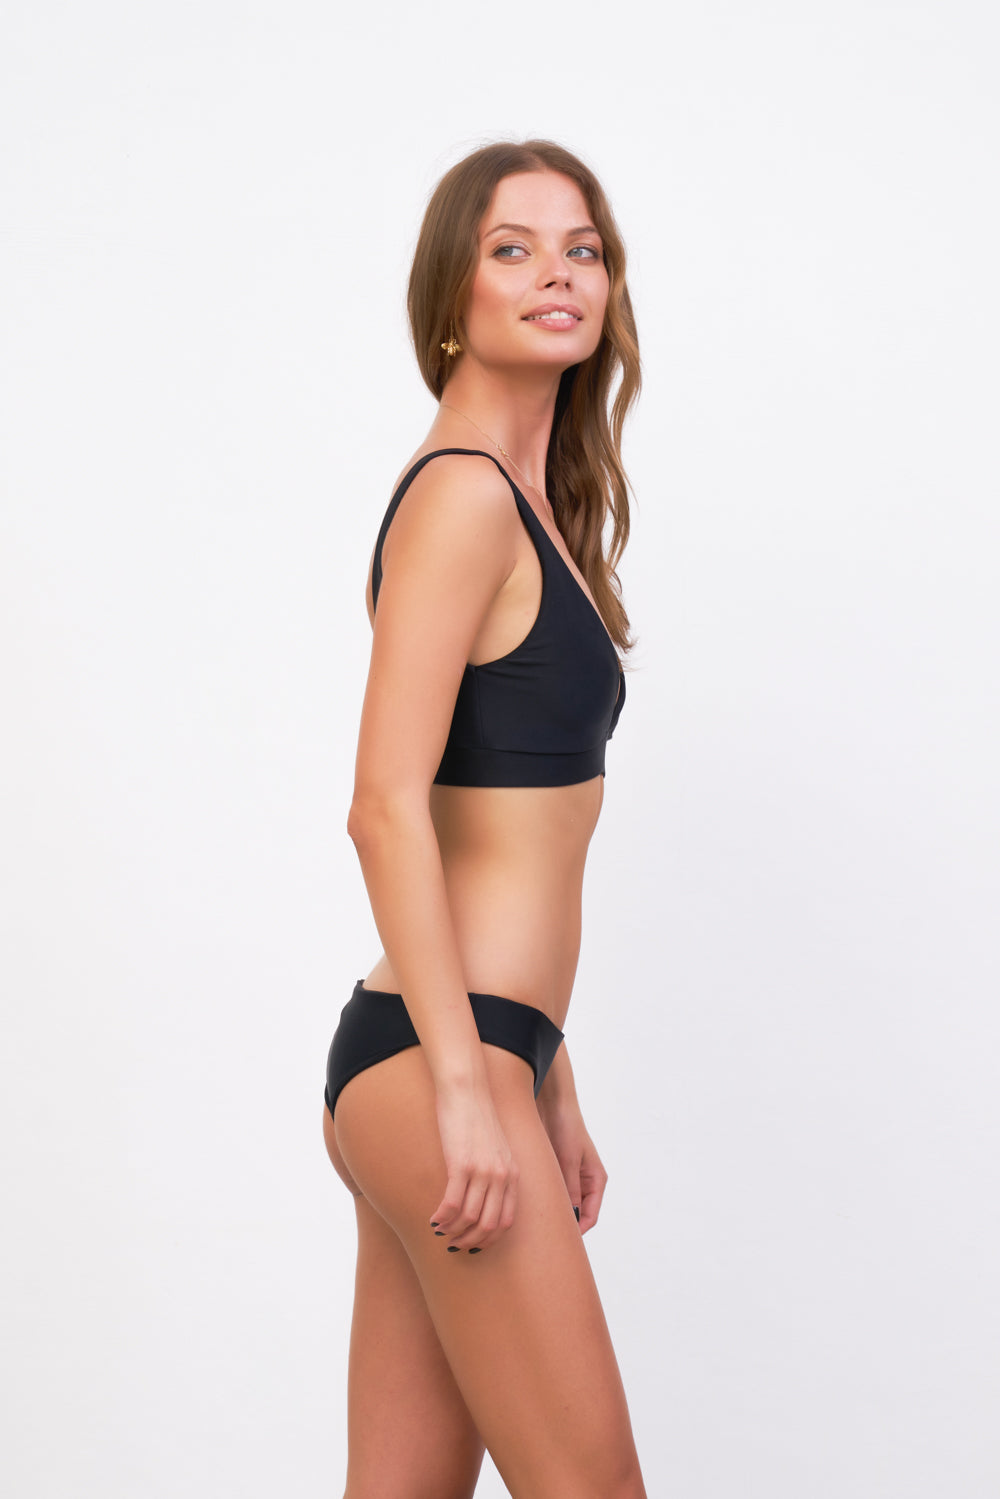 Storm Swimwear - Crete - Coverage top in Black